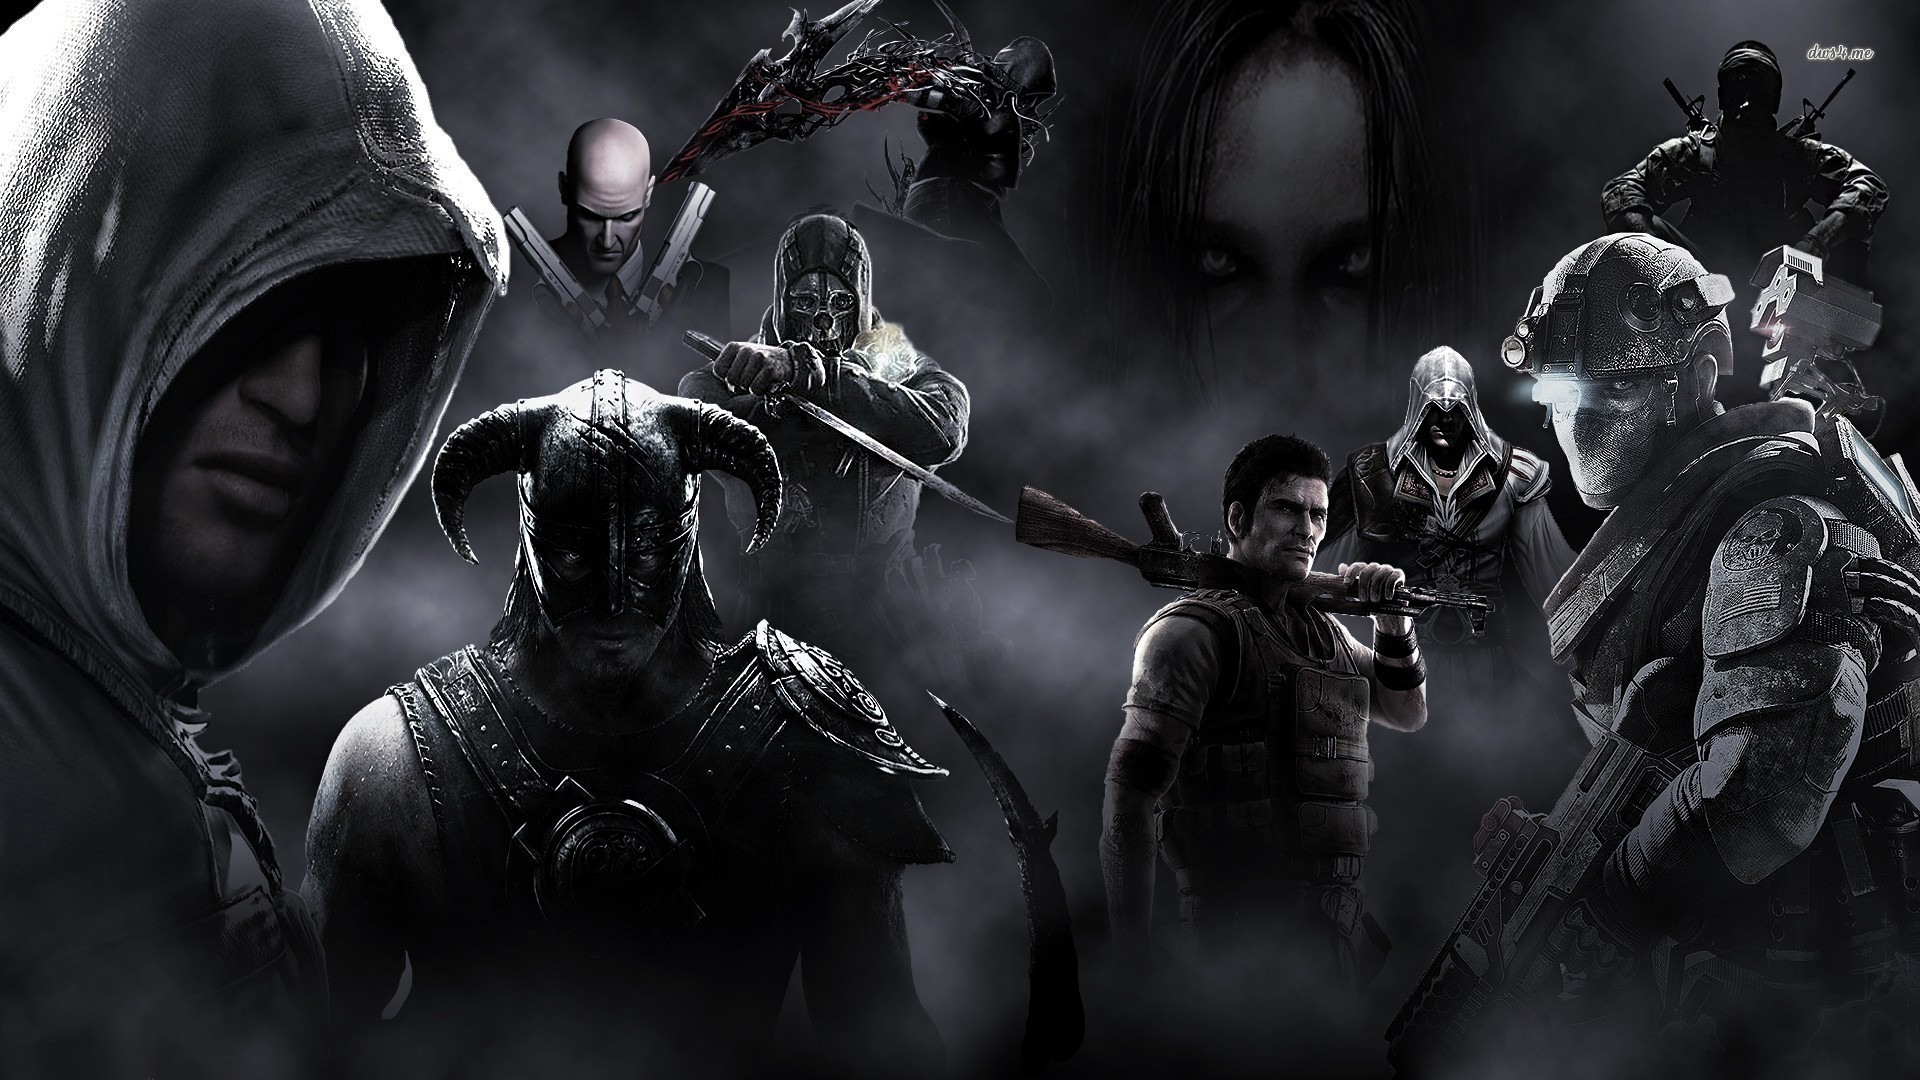 Video Game Characters Free Wallpapers For Desktop Roominvite - Video Game - HD Wallpaper